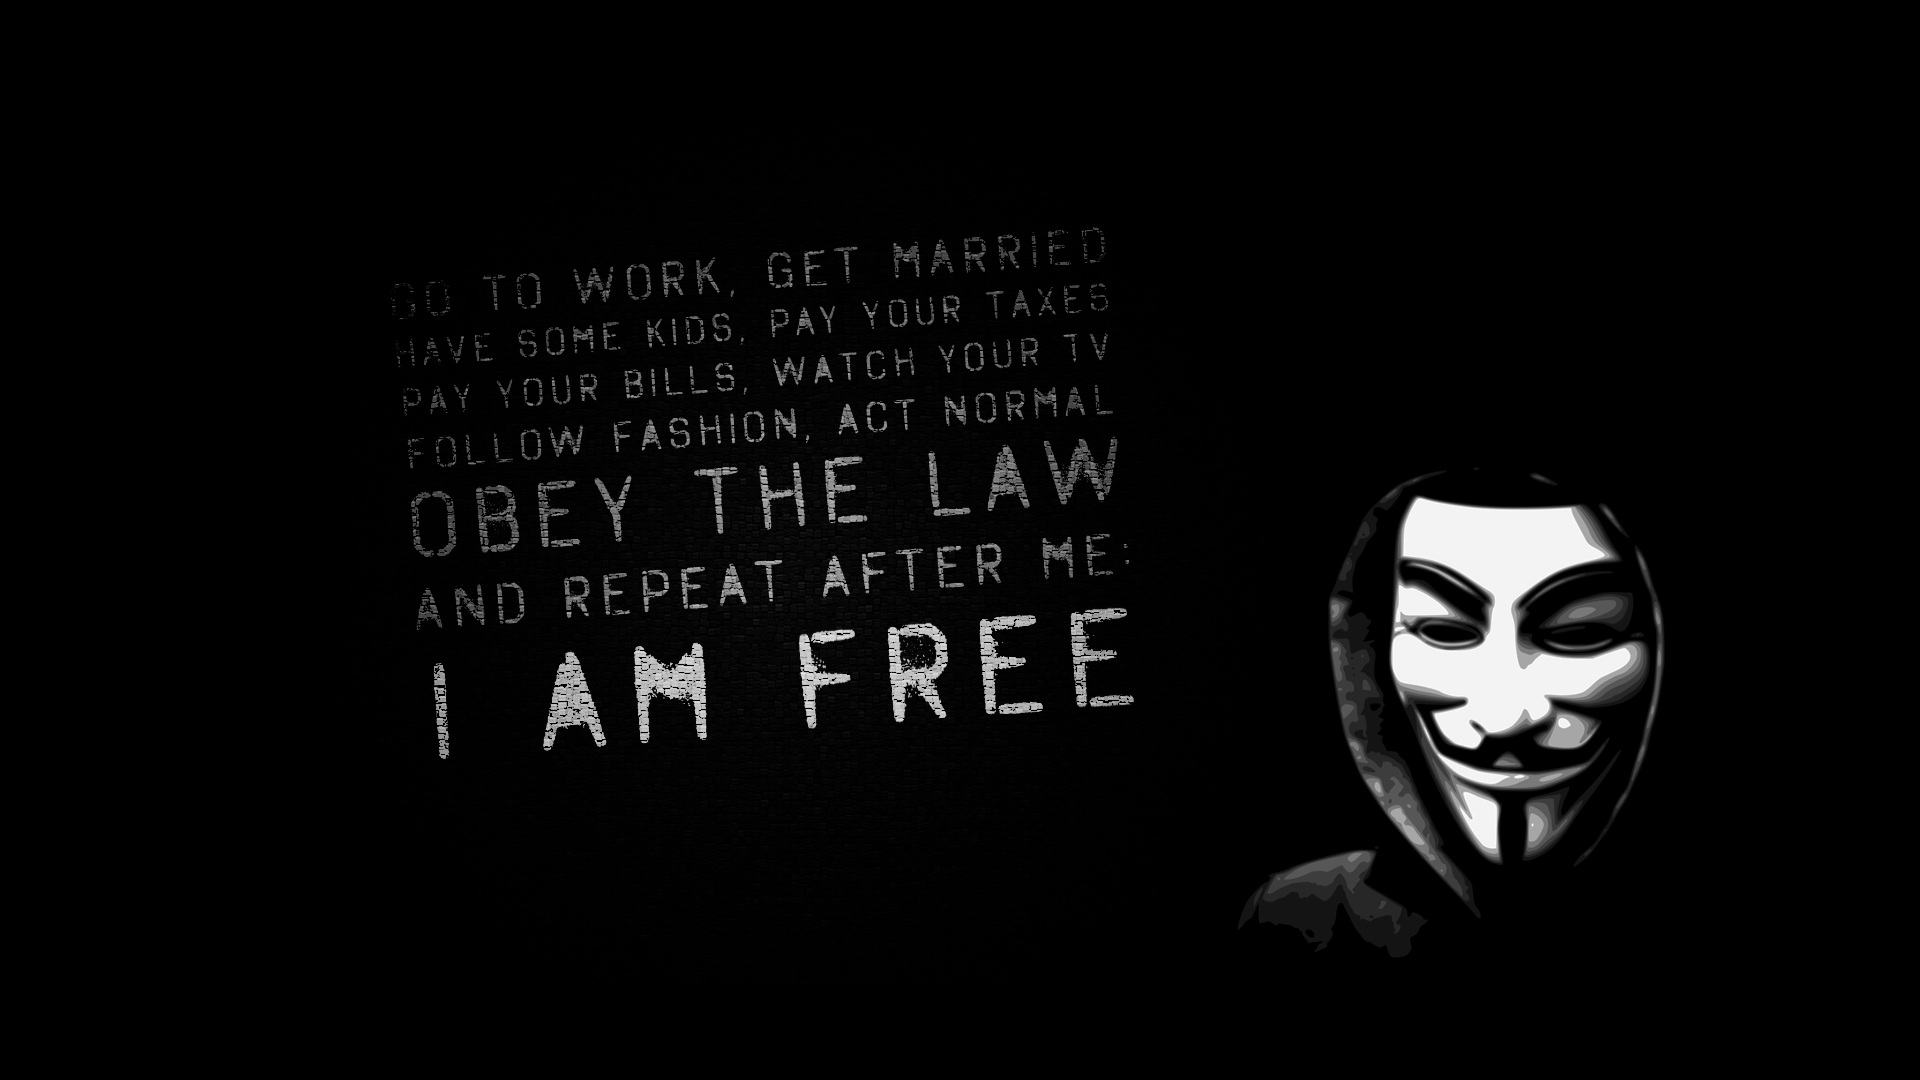 1920x1080 Obey the law desktop PC and Mac wallpaper 1920x1080